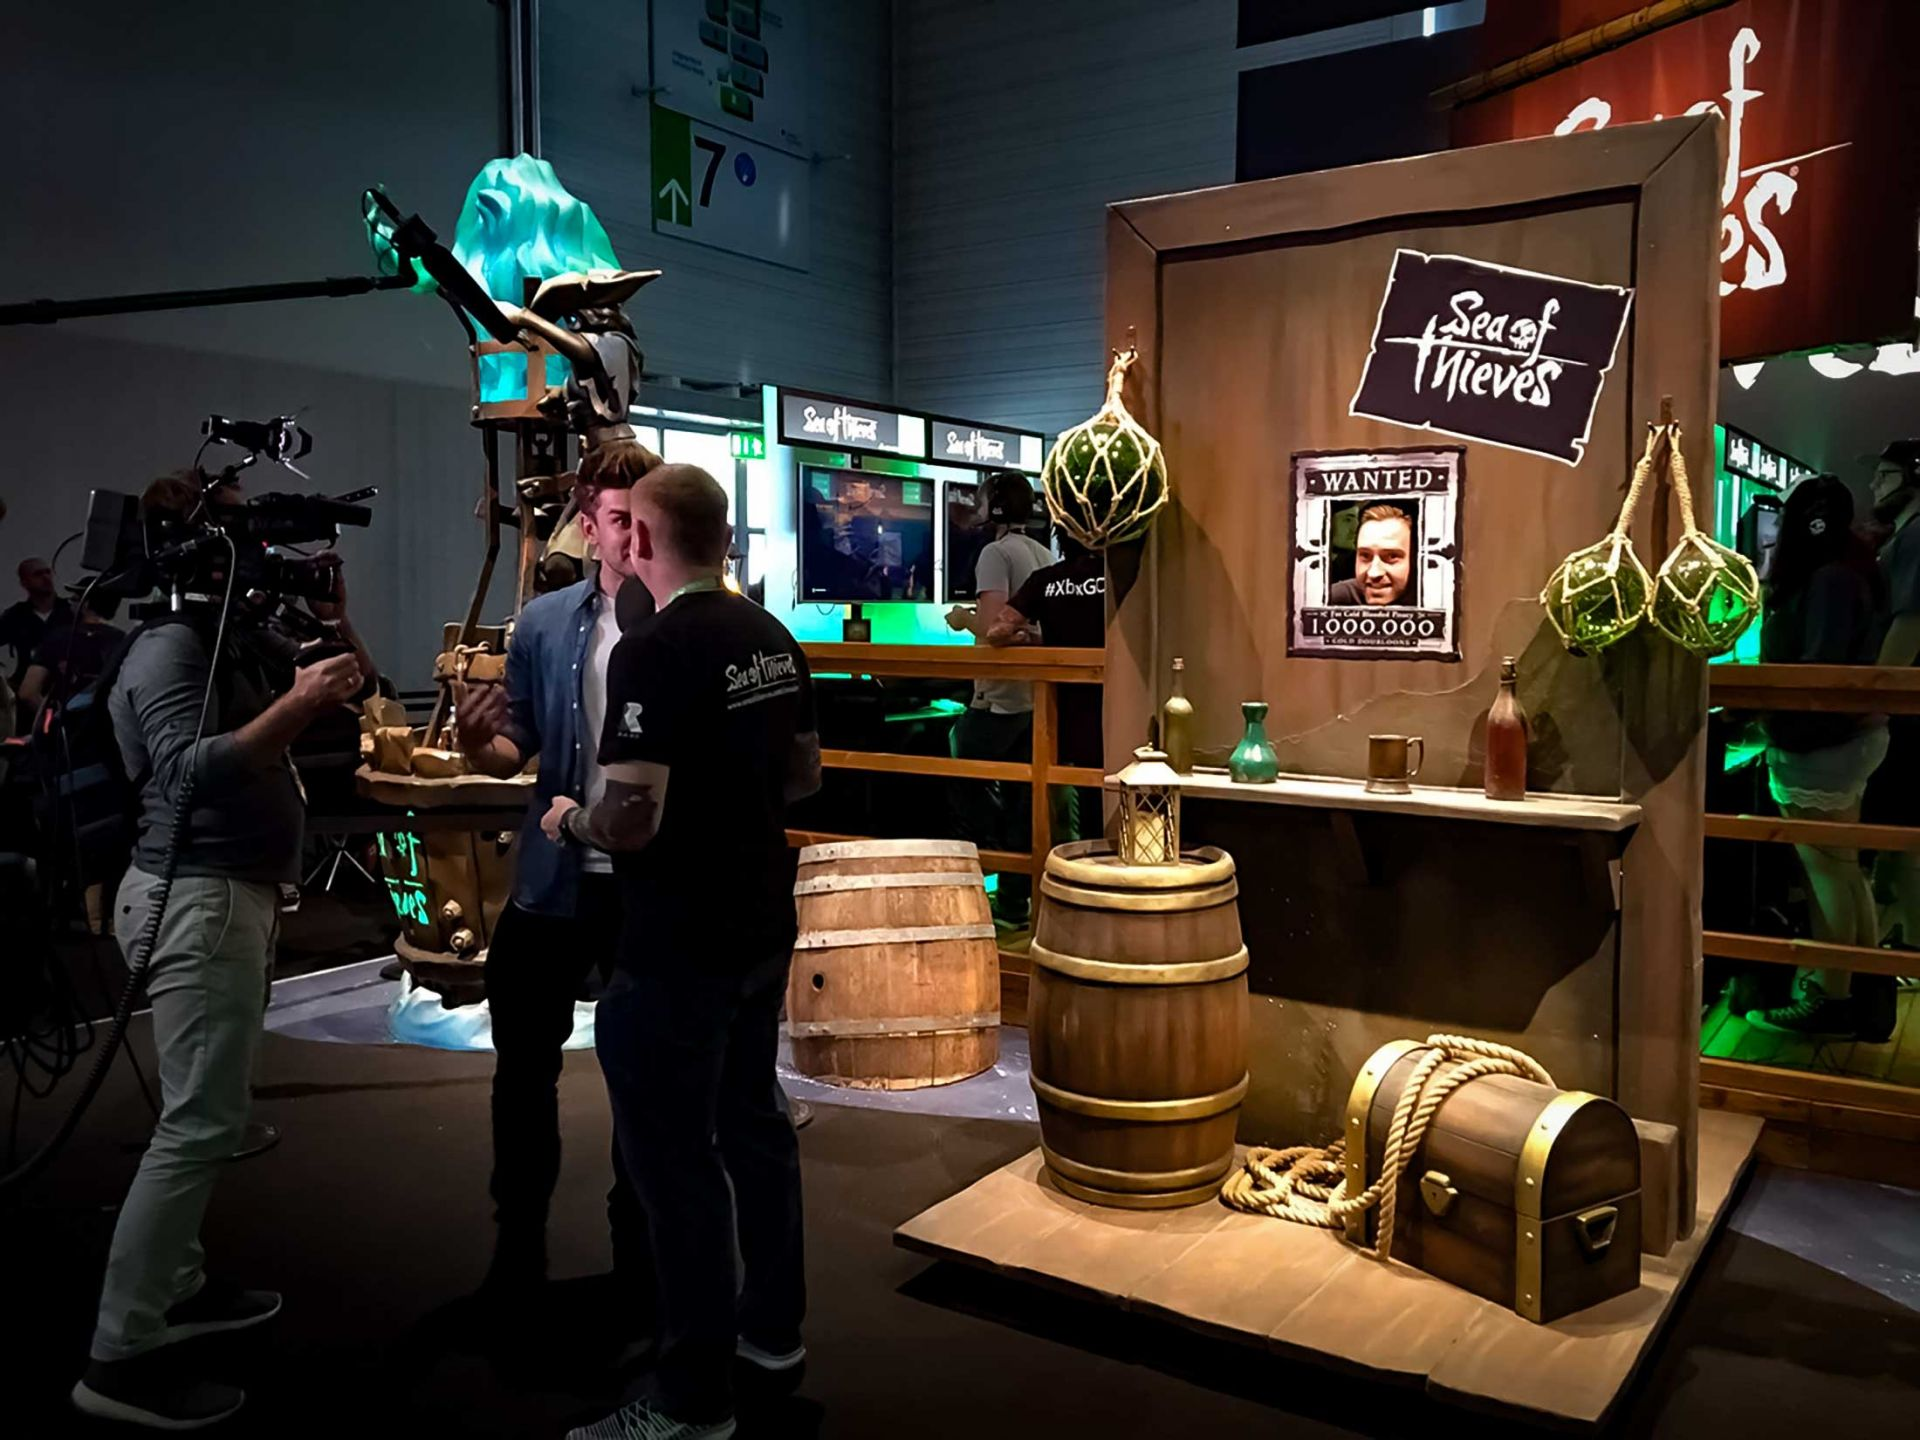 Sea of thieves expo with a man being interviewed in front of a camera and a wall and barrel prop.